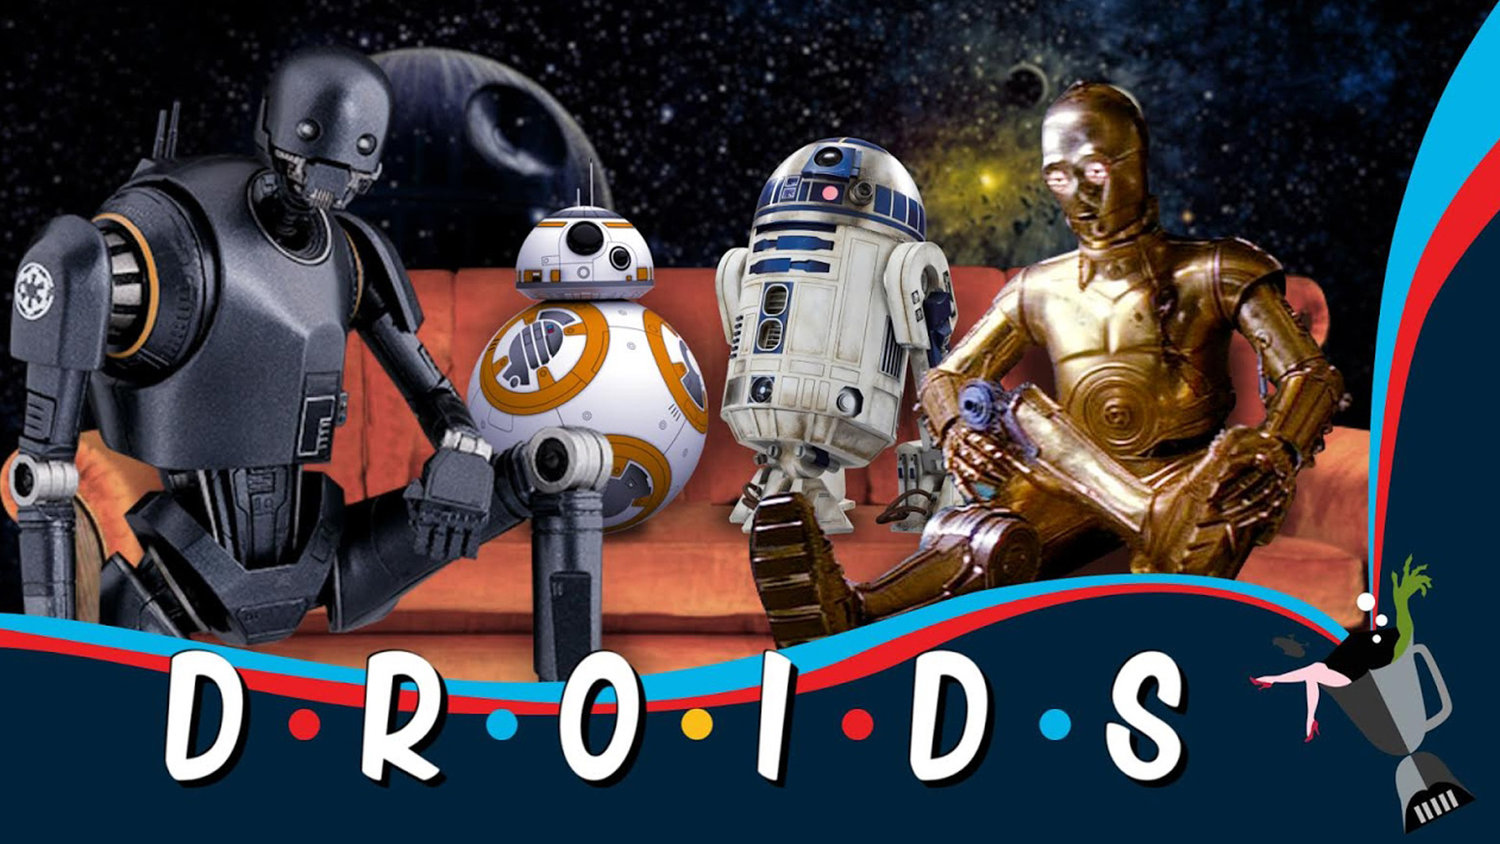 They'll Be There For You: DROIDS Mashes Up STAR WARS Characters With the FRIENDS Theme Song